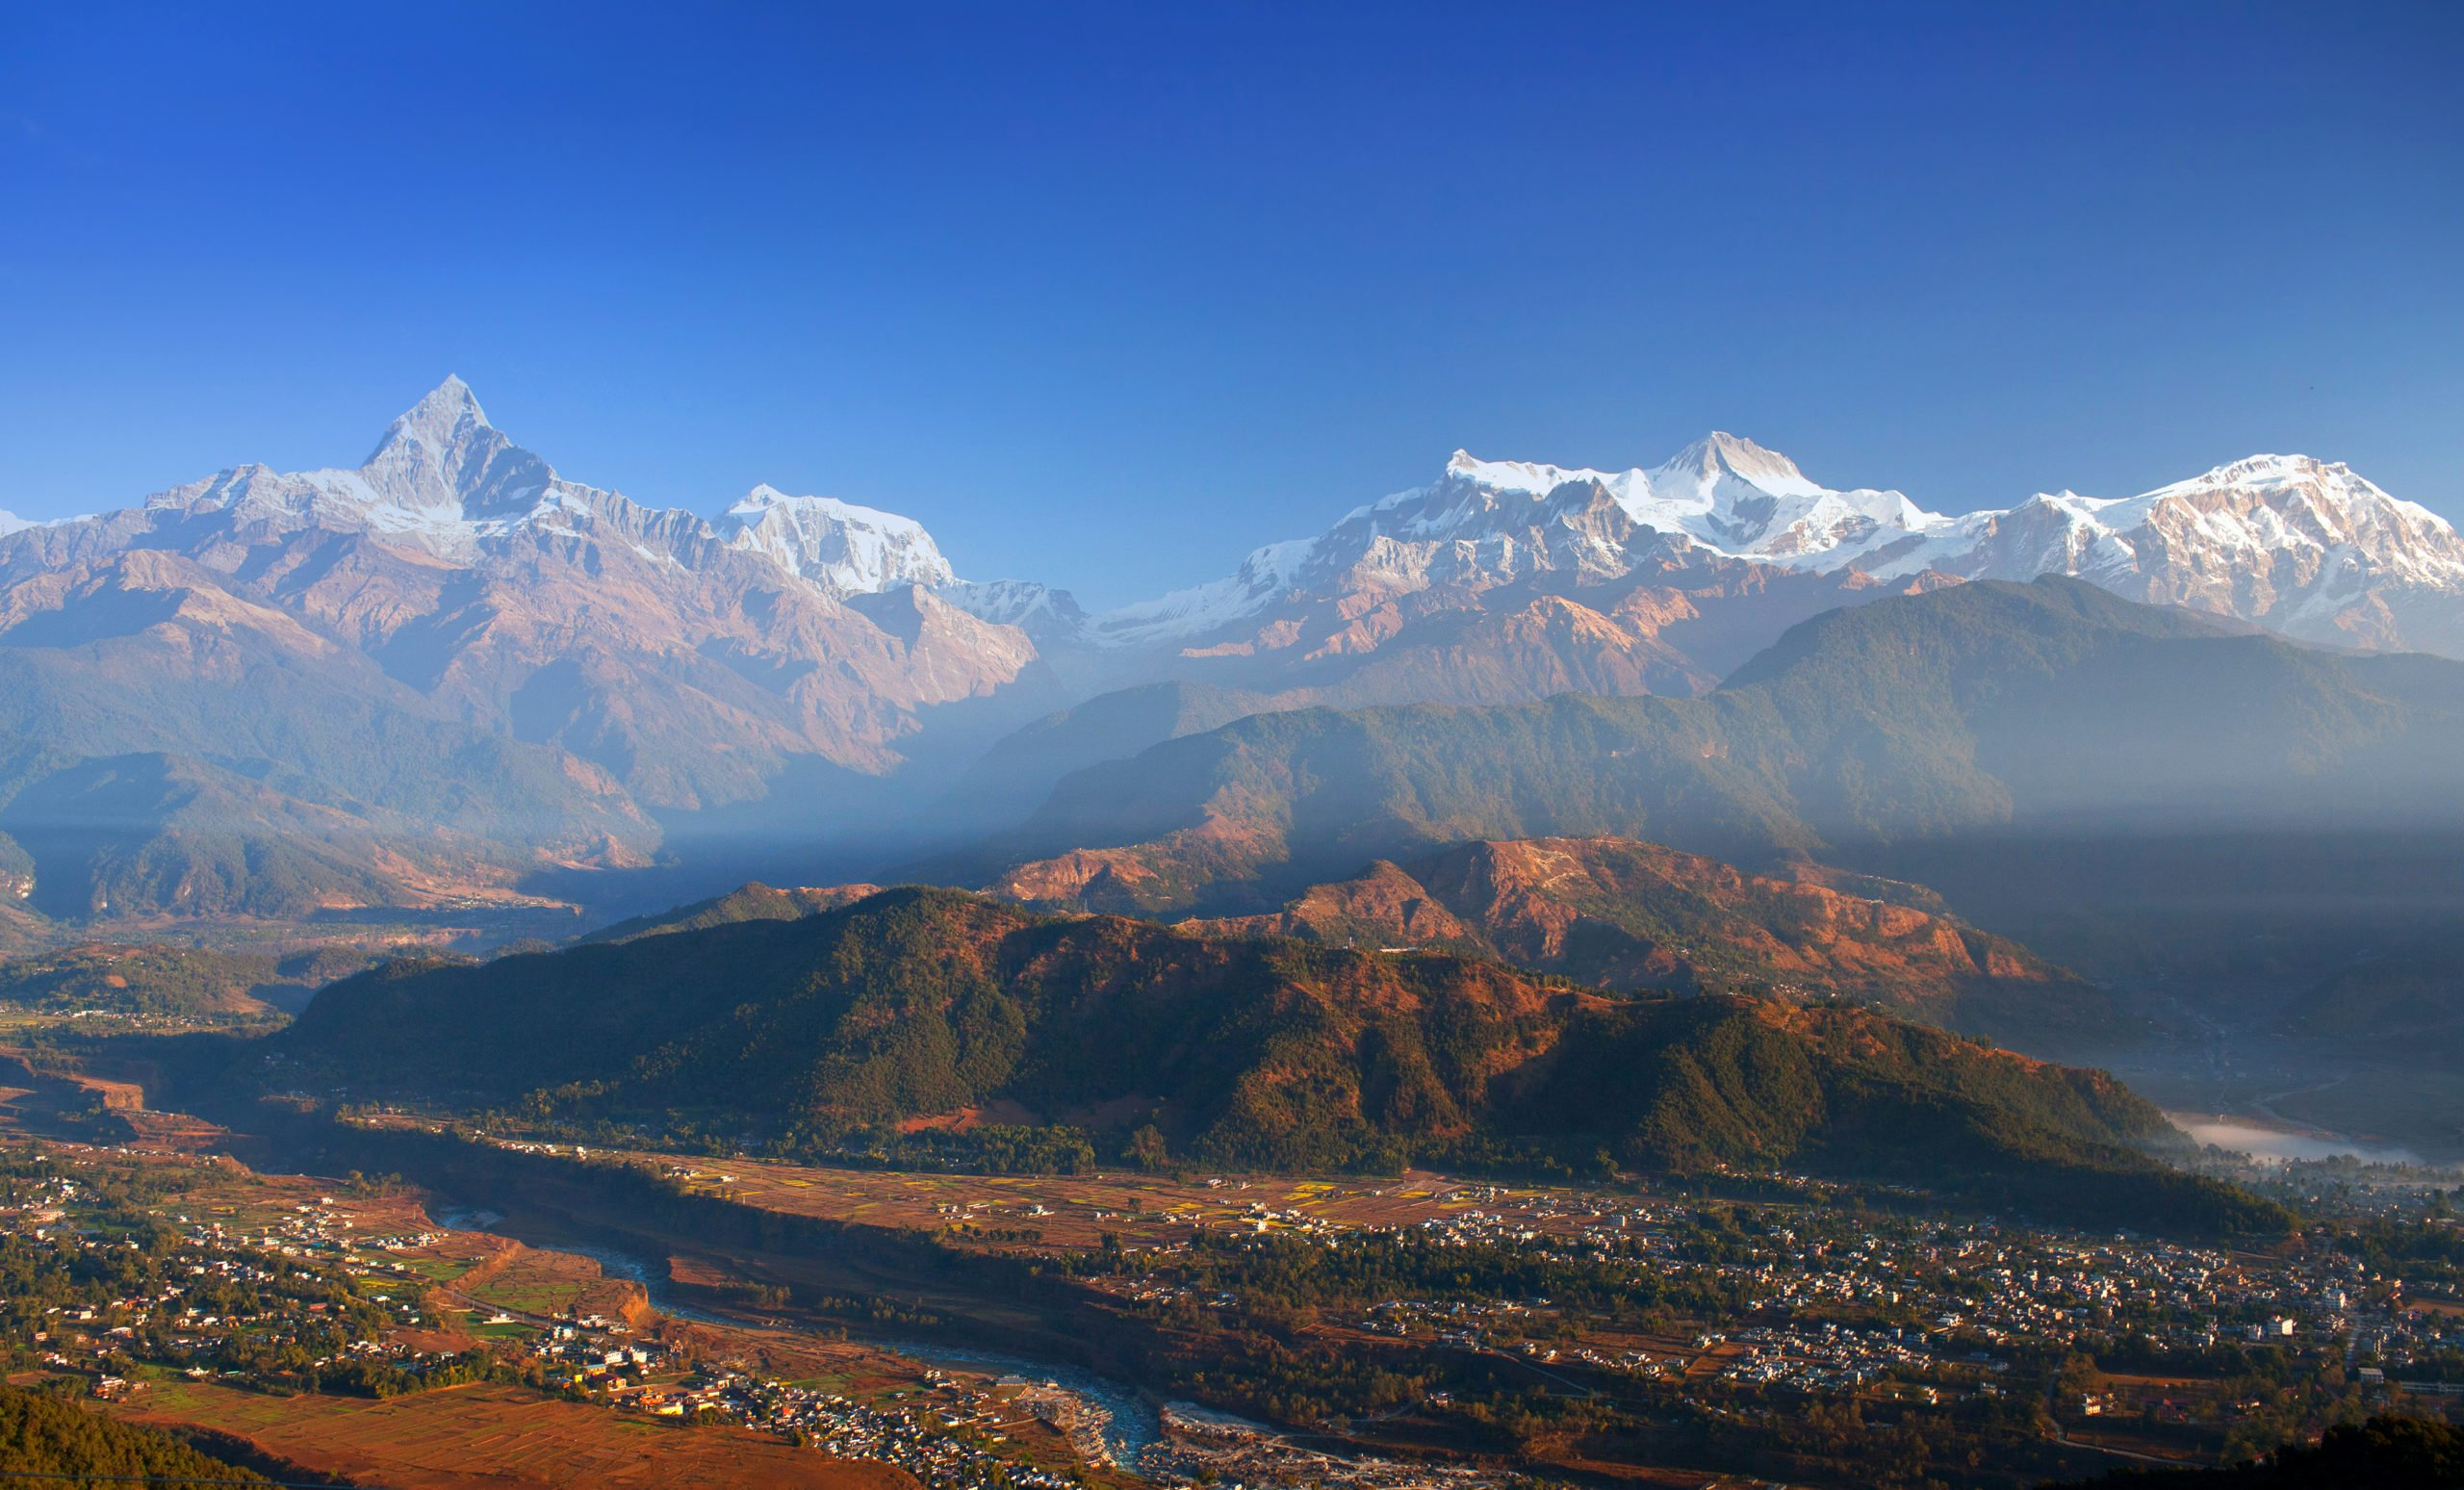 The Kingdom of Nepal